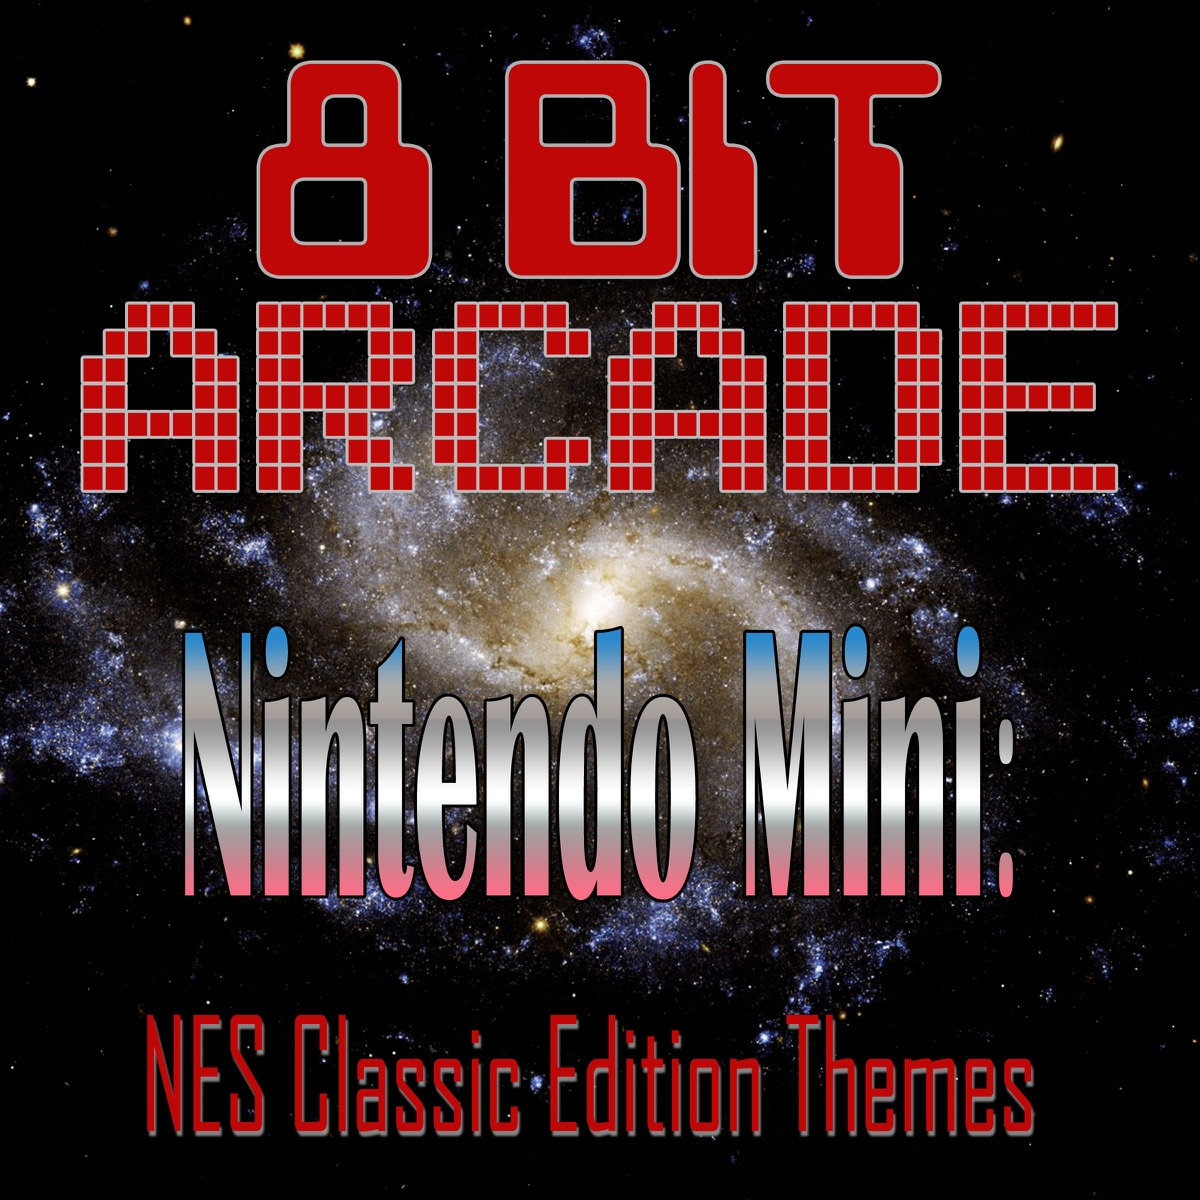 Nintendo Mini NES Classic Edition Themes 8-Bit Arcade CD cover